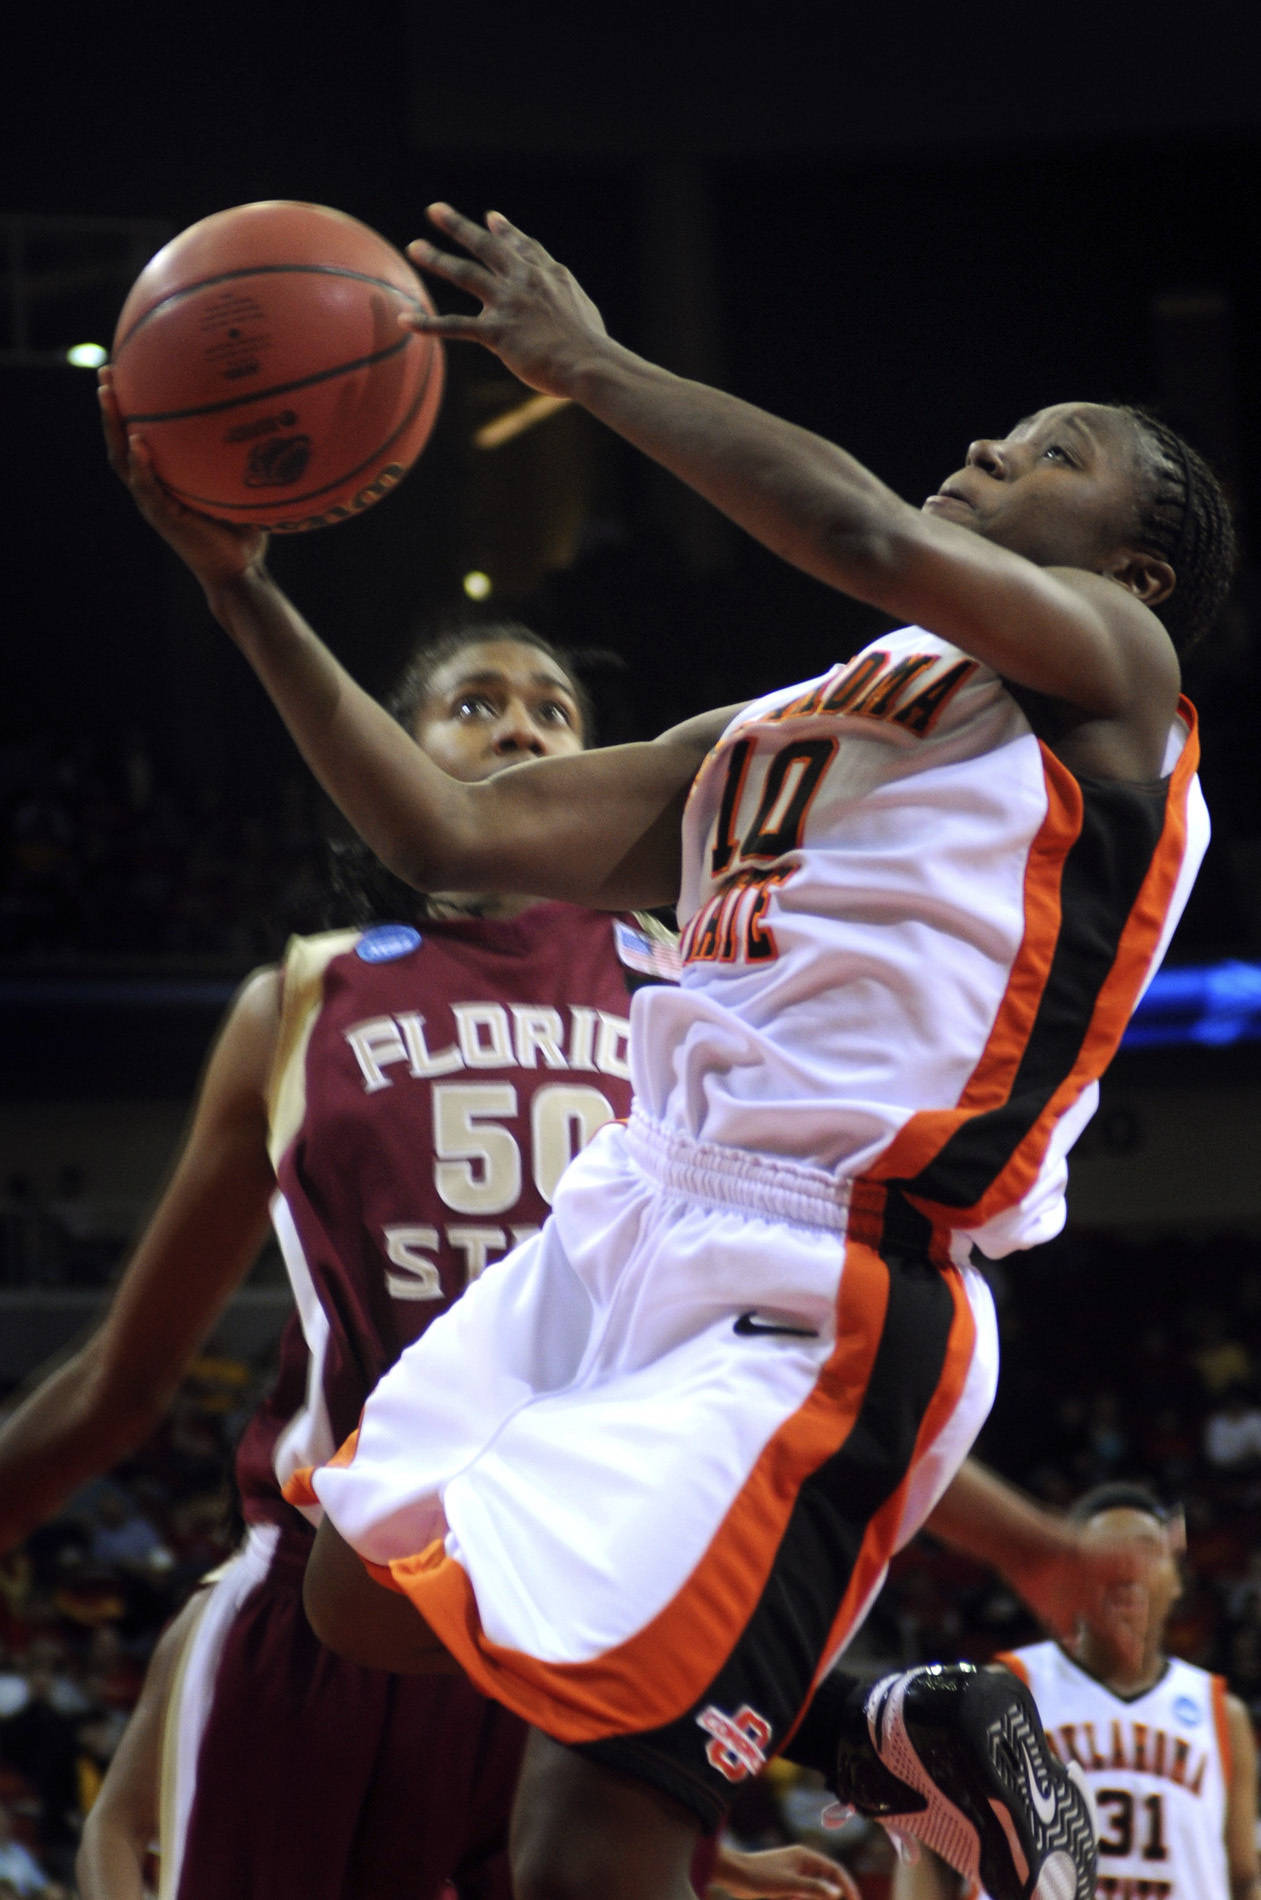 Oklahoma State's Andrea Riley, right, shoots as Florida State's Jacinta Monroe defends during the second half of an NCAA women's basketball tournament second round game, Monday, March 24, 2008 in Des Moines, Iowa. Riley made a free throw with 0.7 seconds left on the clock in overtime to give Oklahoma State a 73-72 win over Florida State. (AP Photo/Steve Pope)